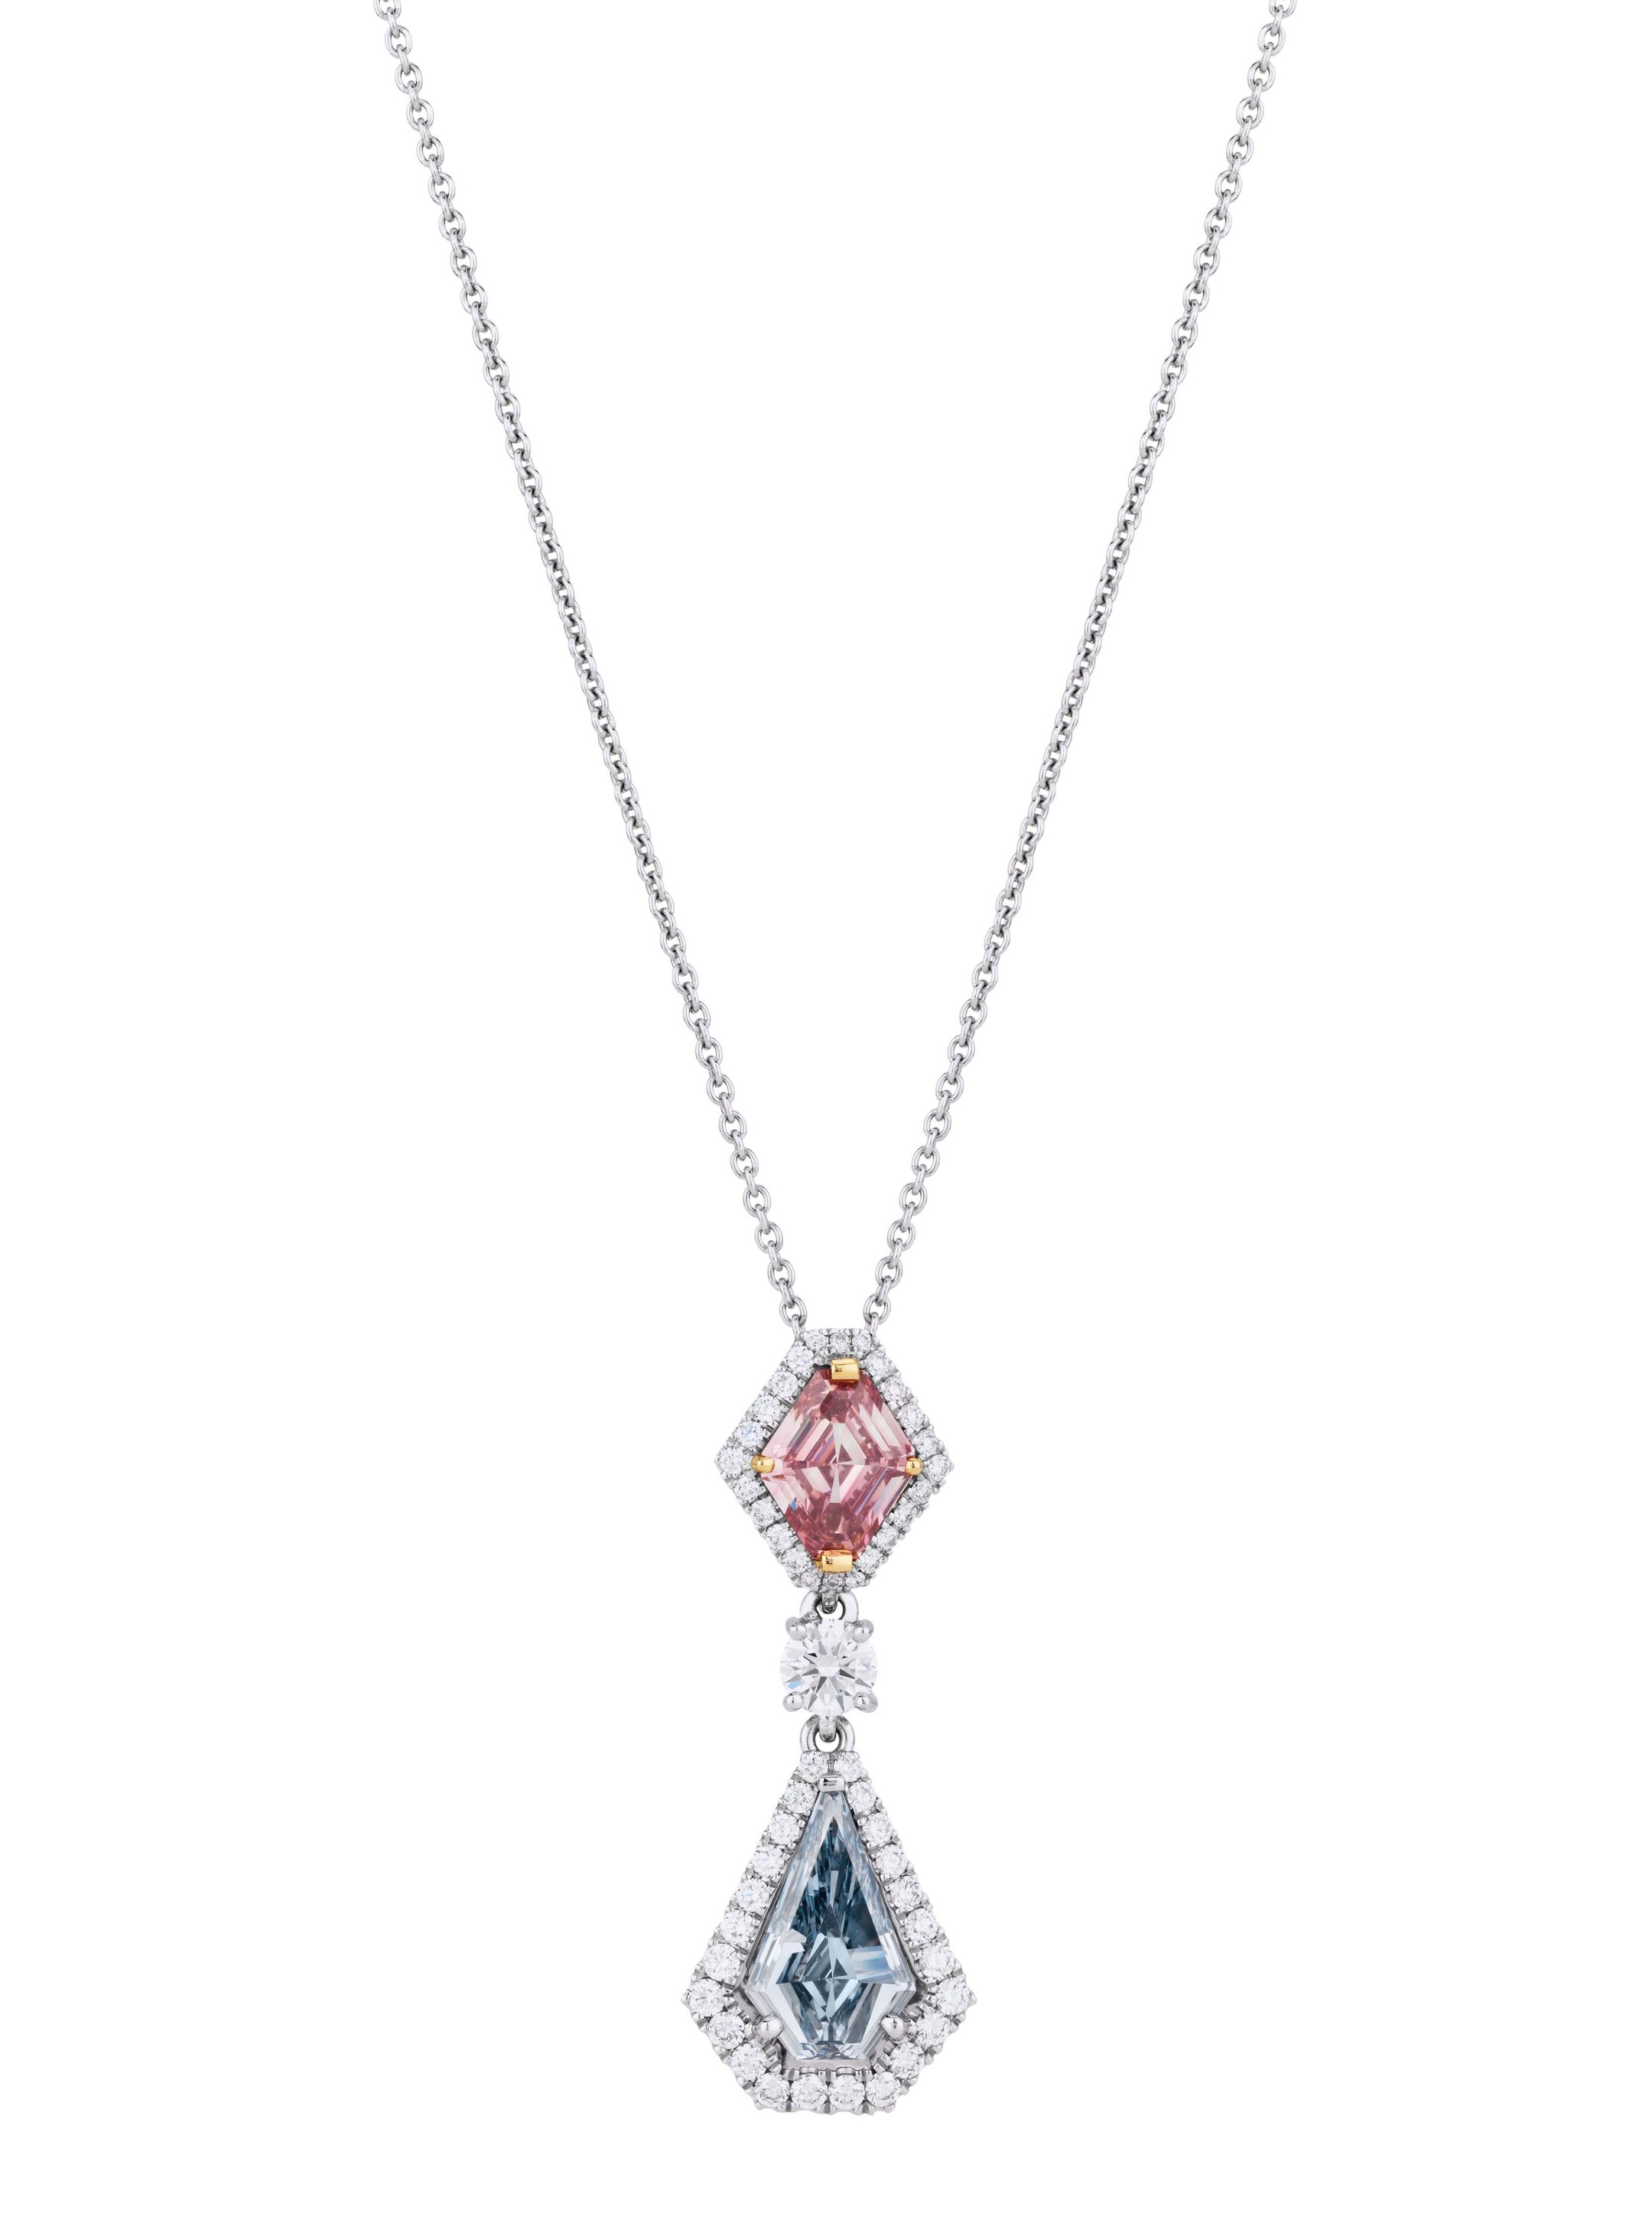 De Beers 1888 Master Diamonds Aura high jewellery pendant, set with a shield-cut Fancy Intense pink diamond, round brilliant diamonds and a shield-cut Fancy Intense blue diamond.